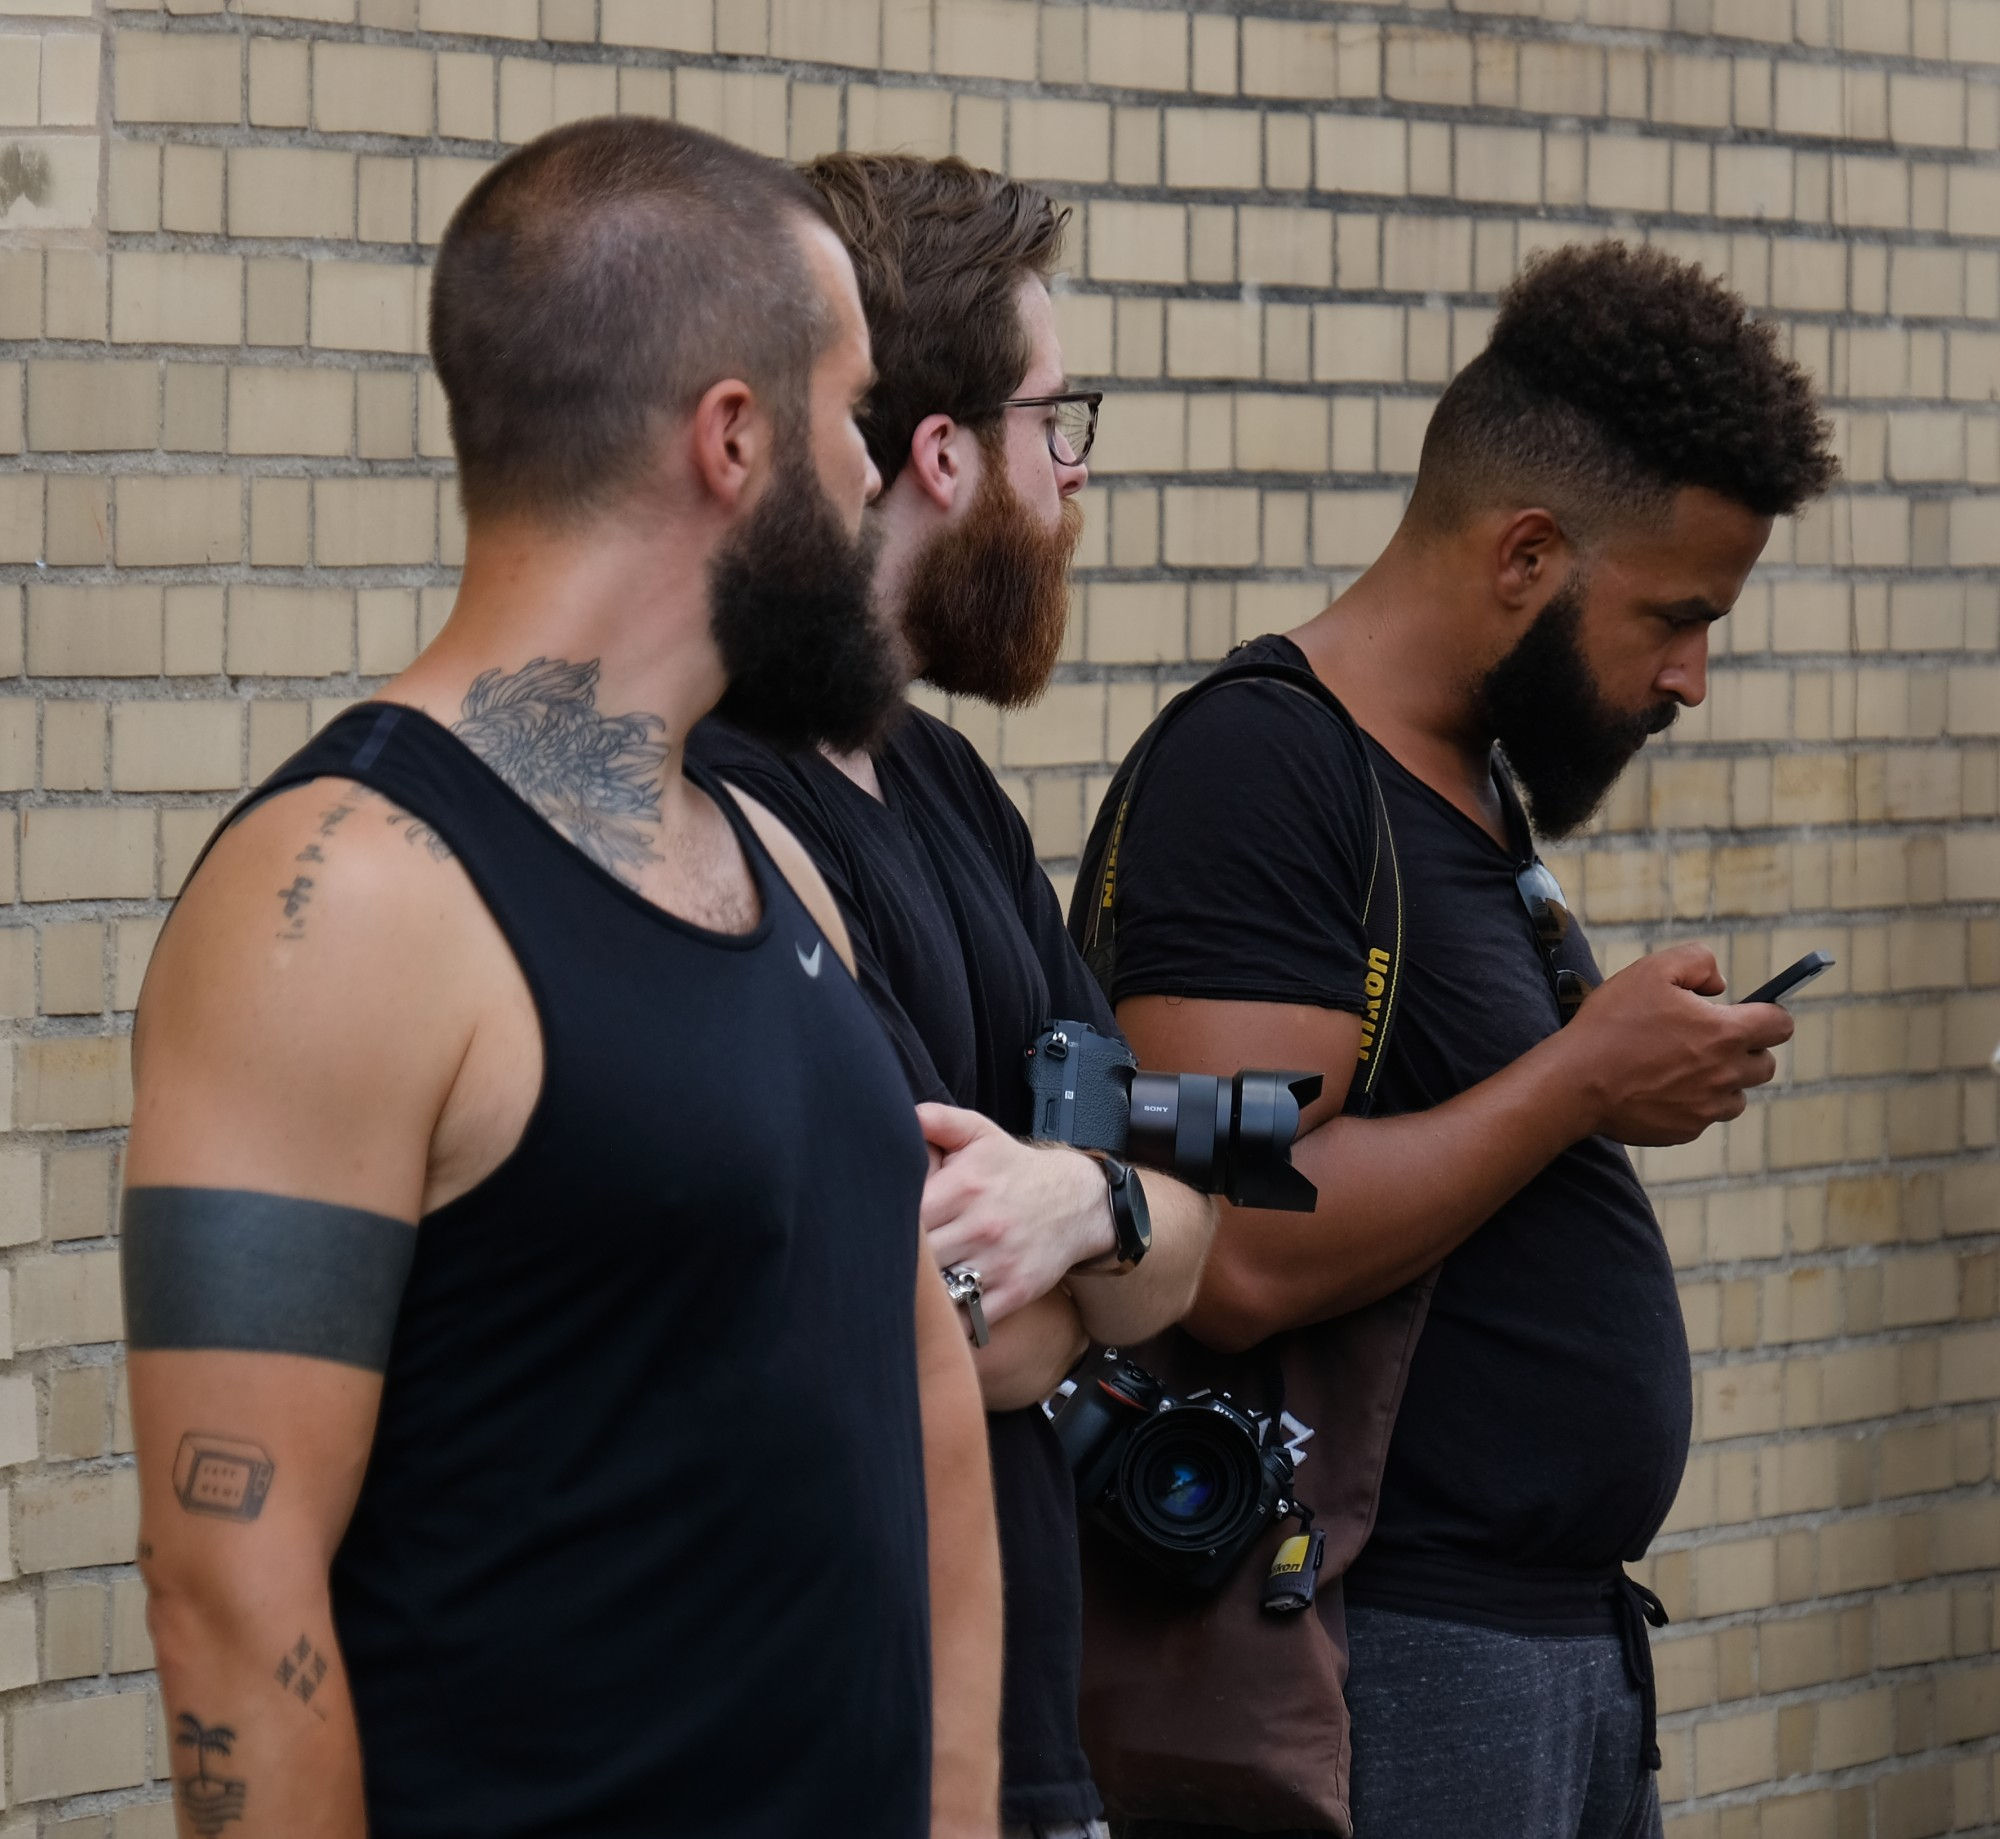 3 bearded street photographers